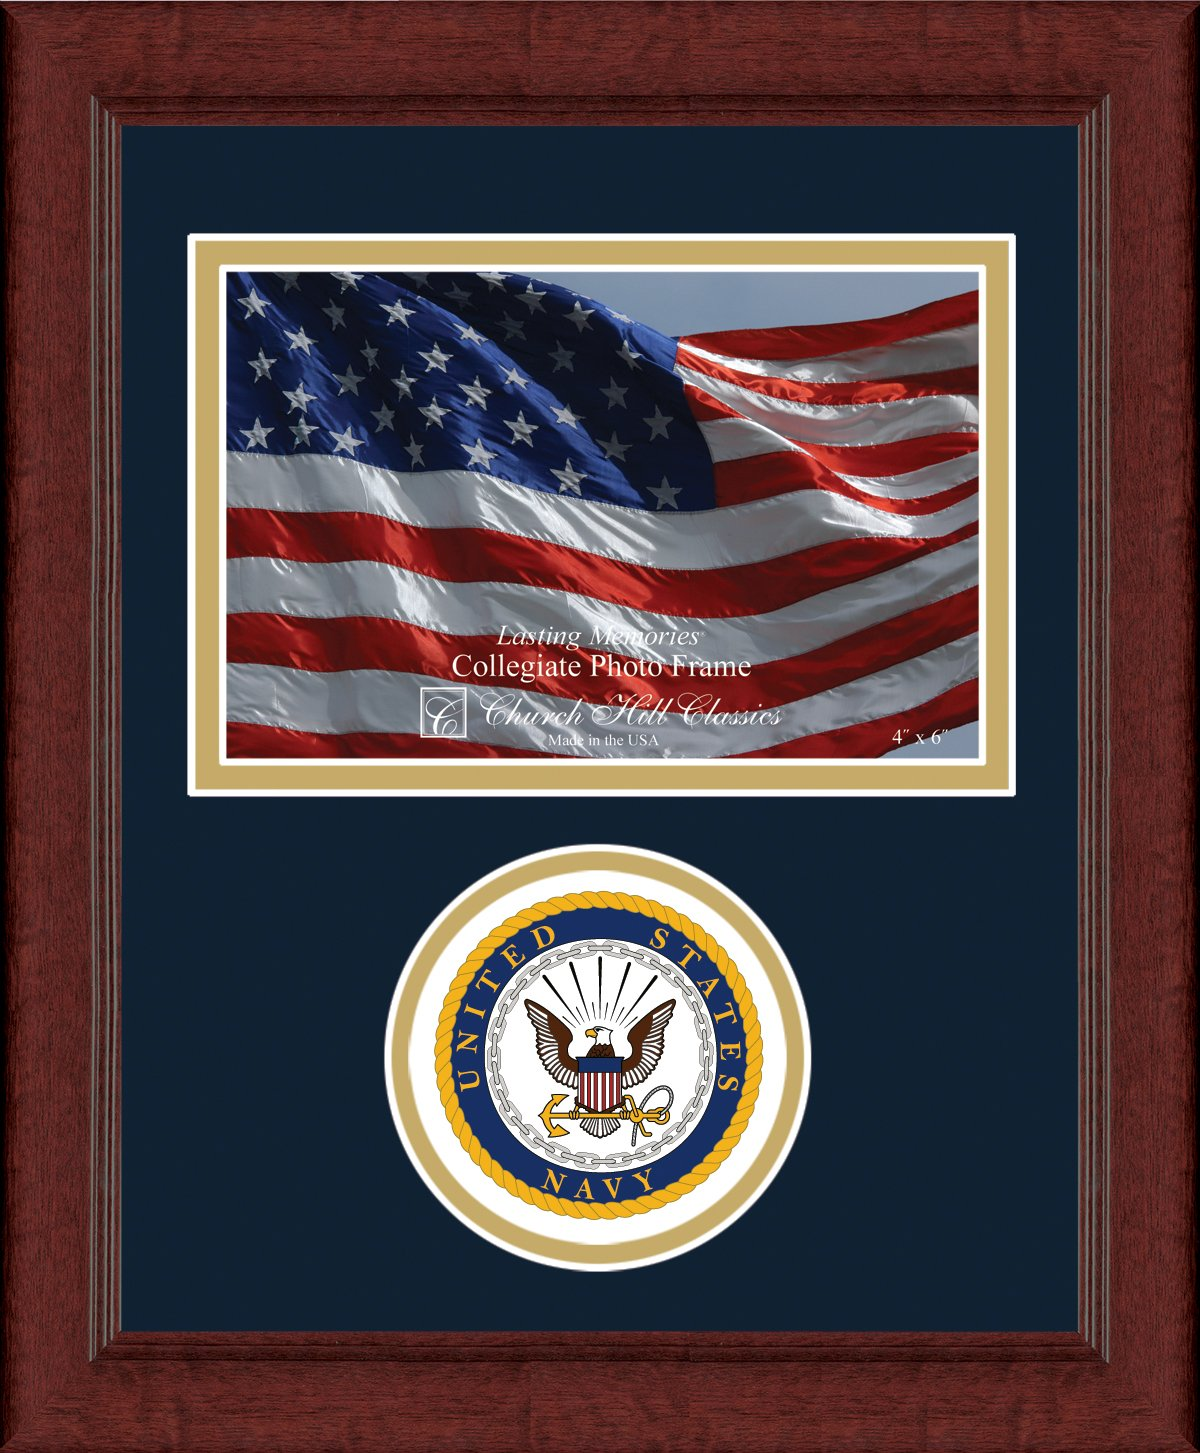 US Navy Photo Frame - 4 x 6 Horizontal Photo - Features US Navy Seal - By Church Hill Classics